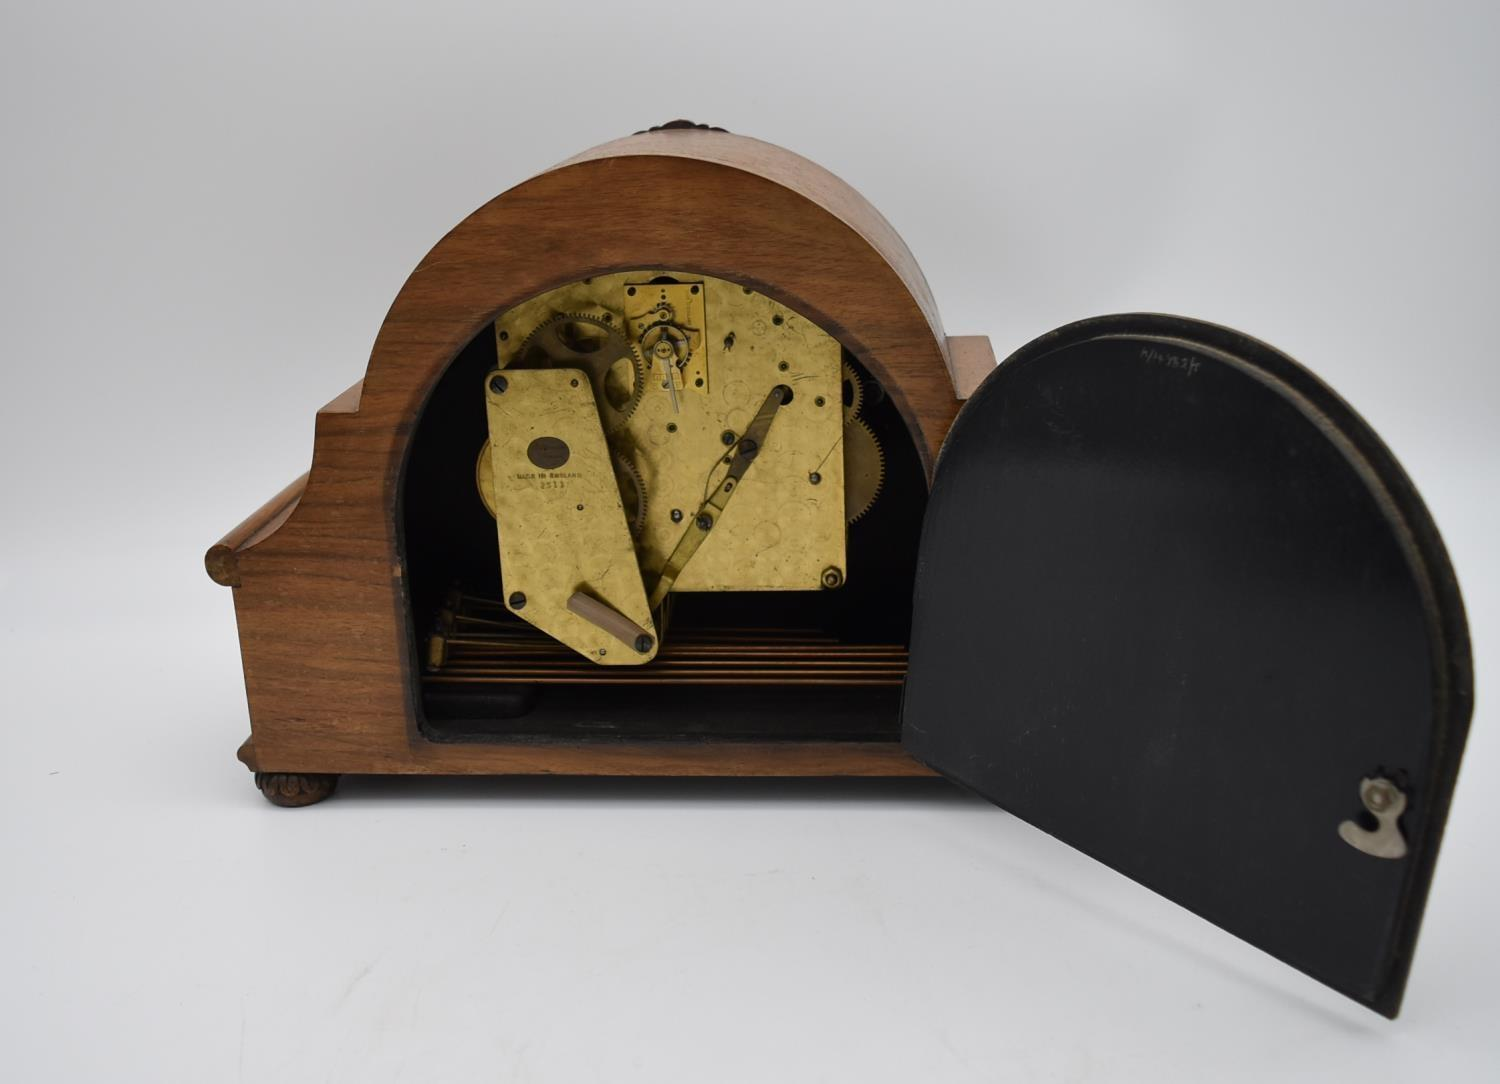 A miscellaneous collection of six mid 20th century mantel clocks. One by JW Benson of London. H. - Image 6 of 6